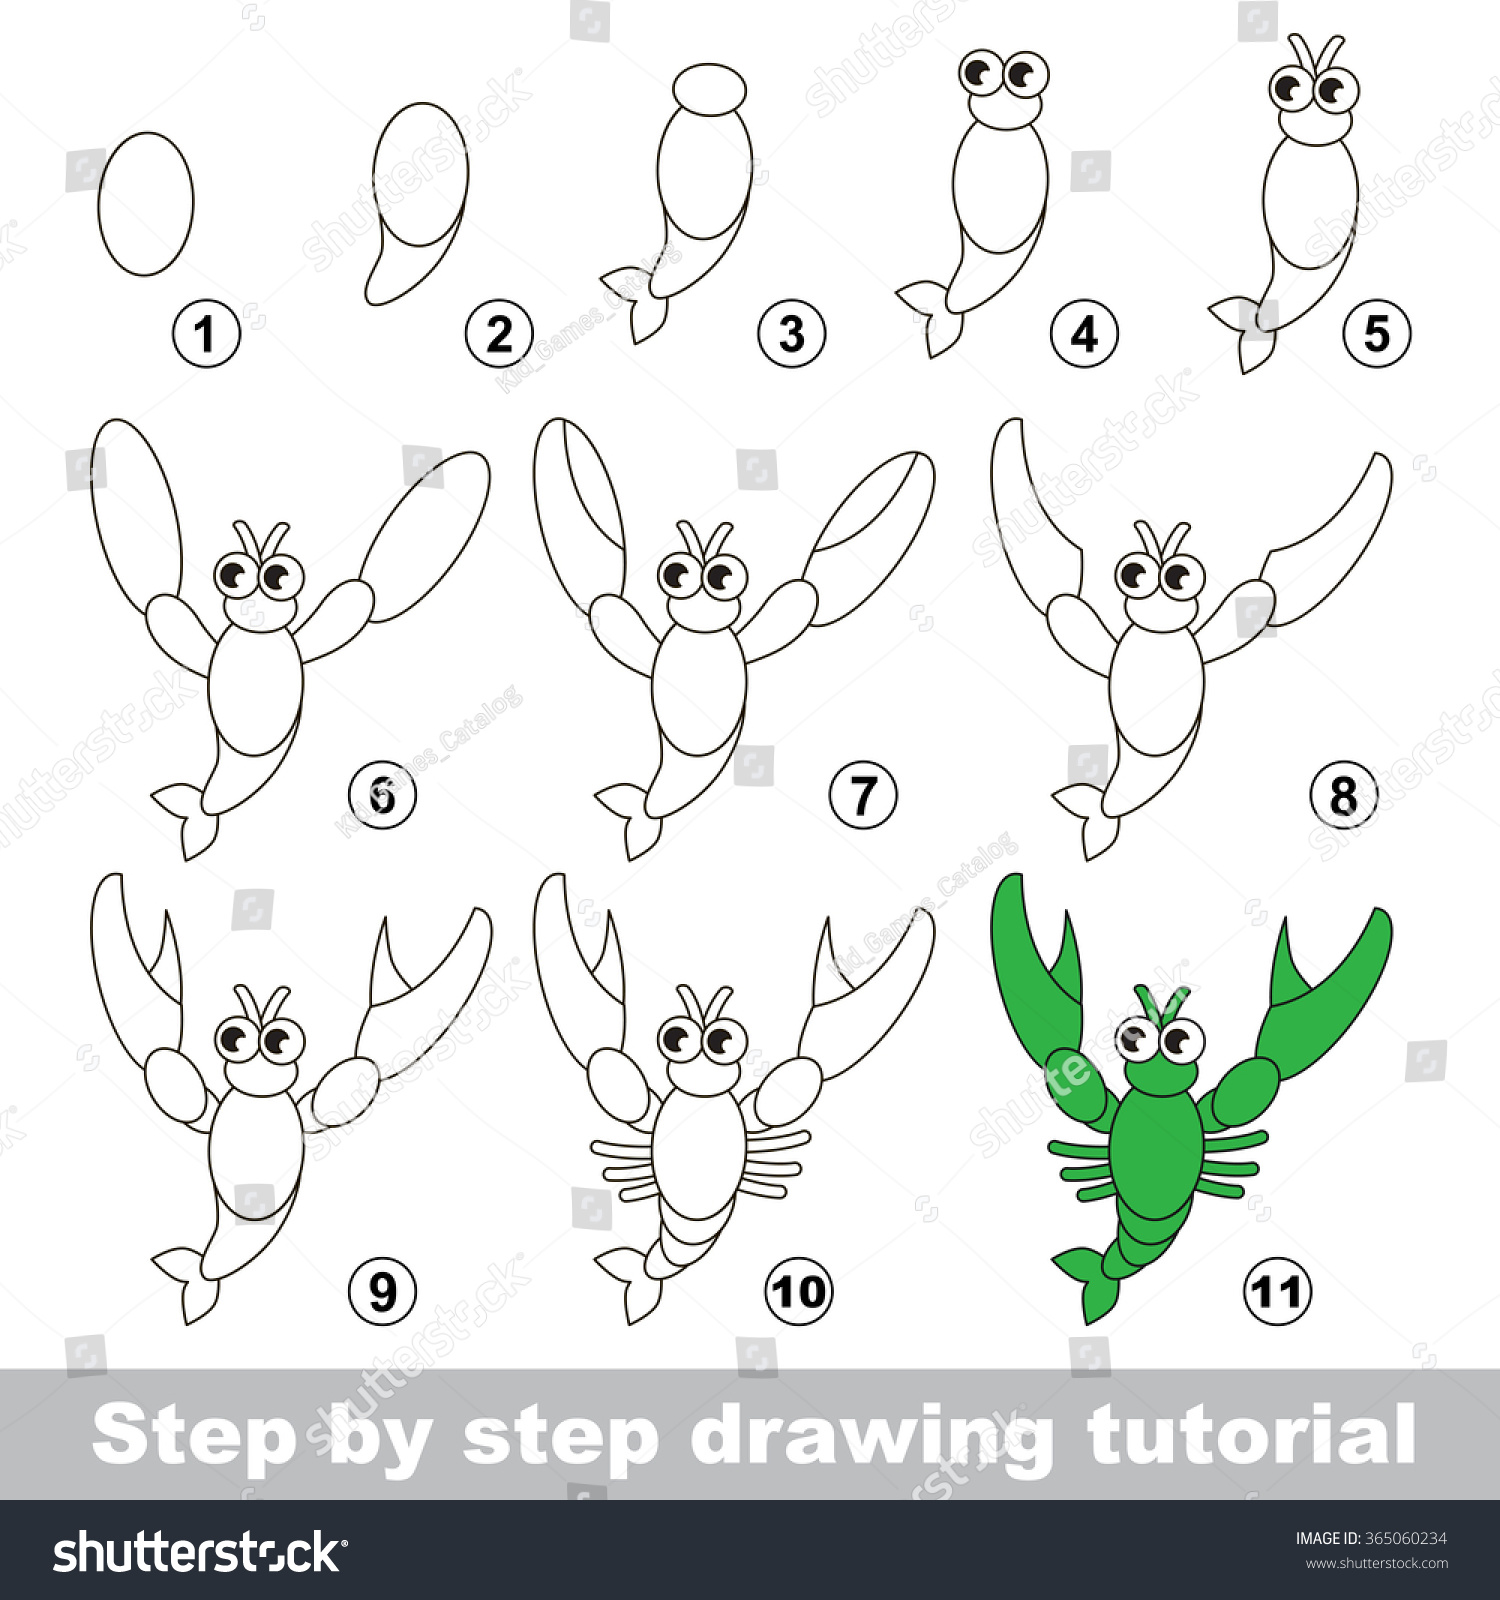 how to draw a cartoon crawfish step by step